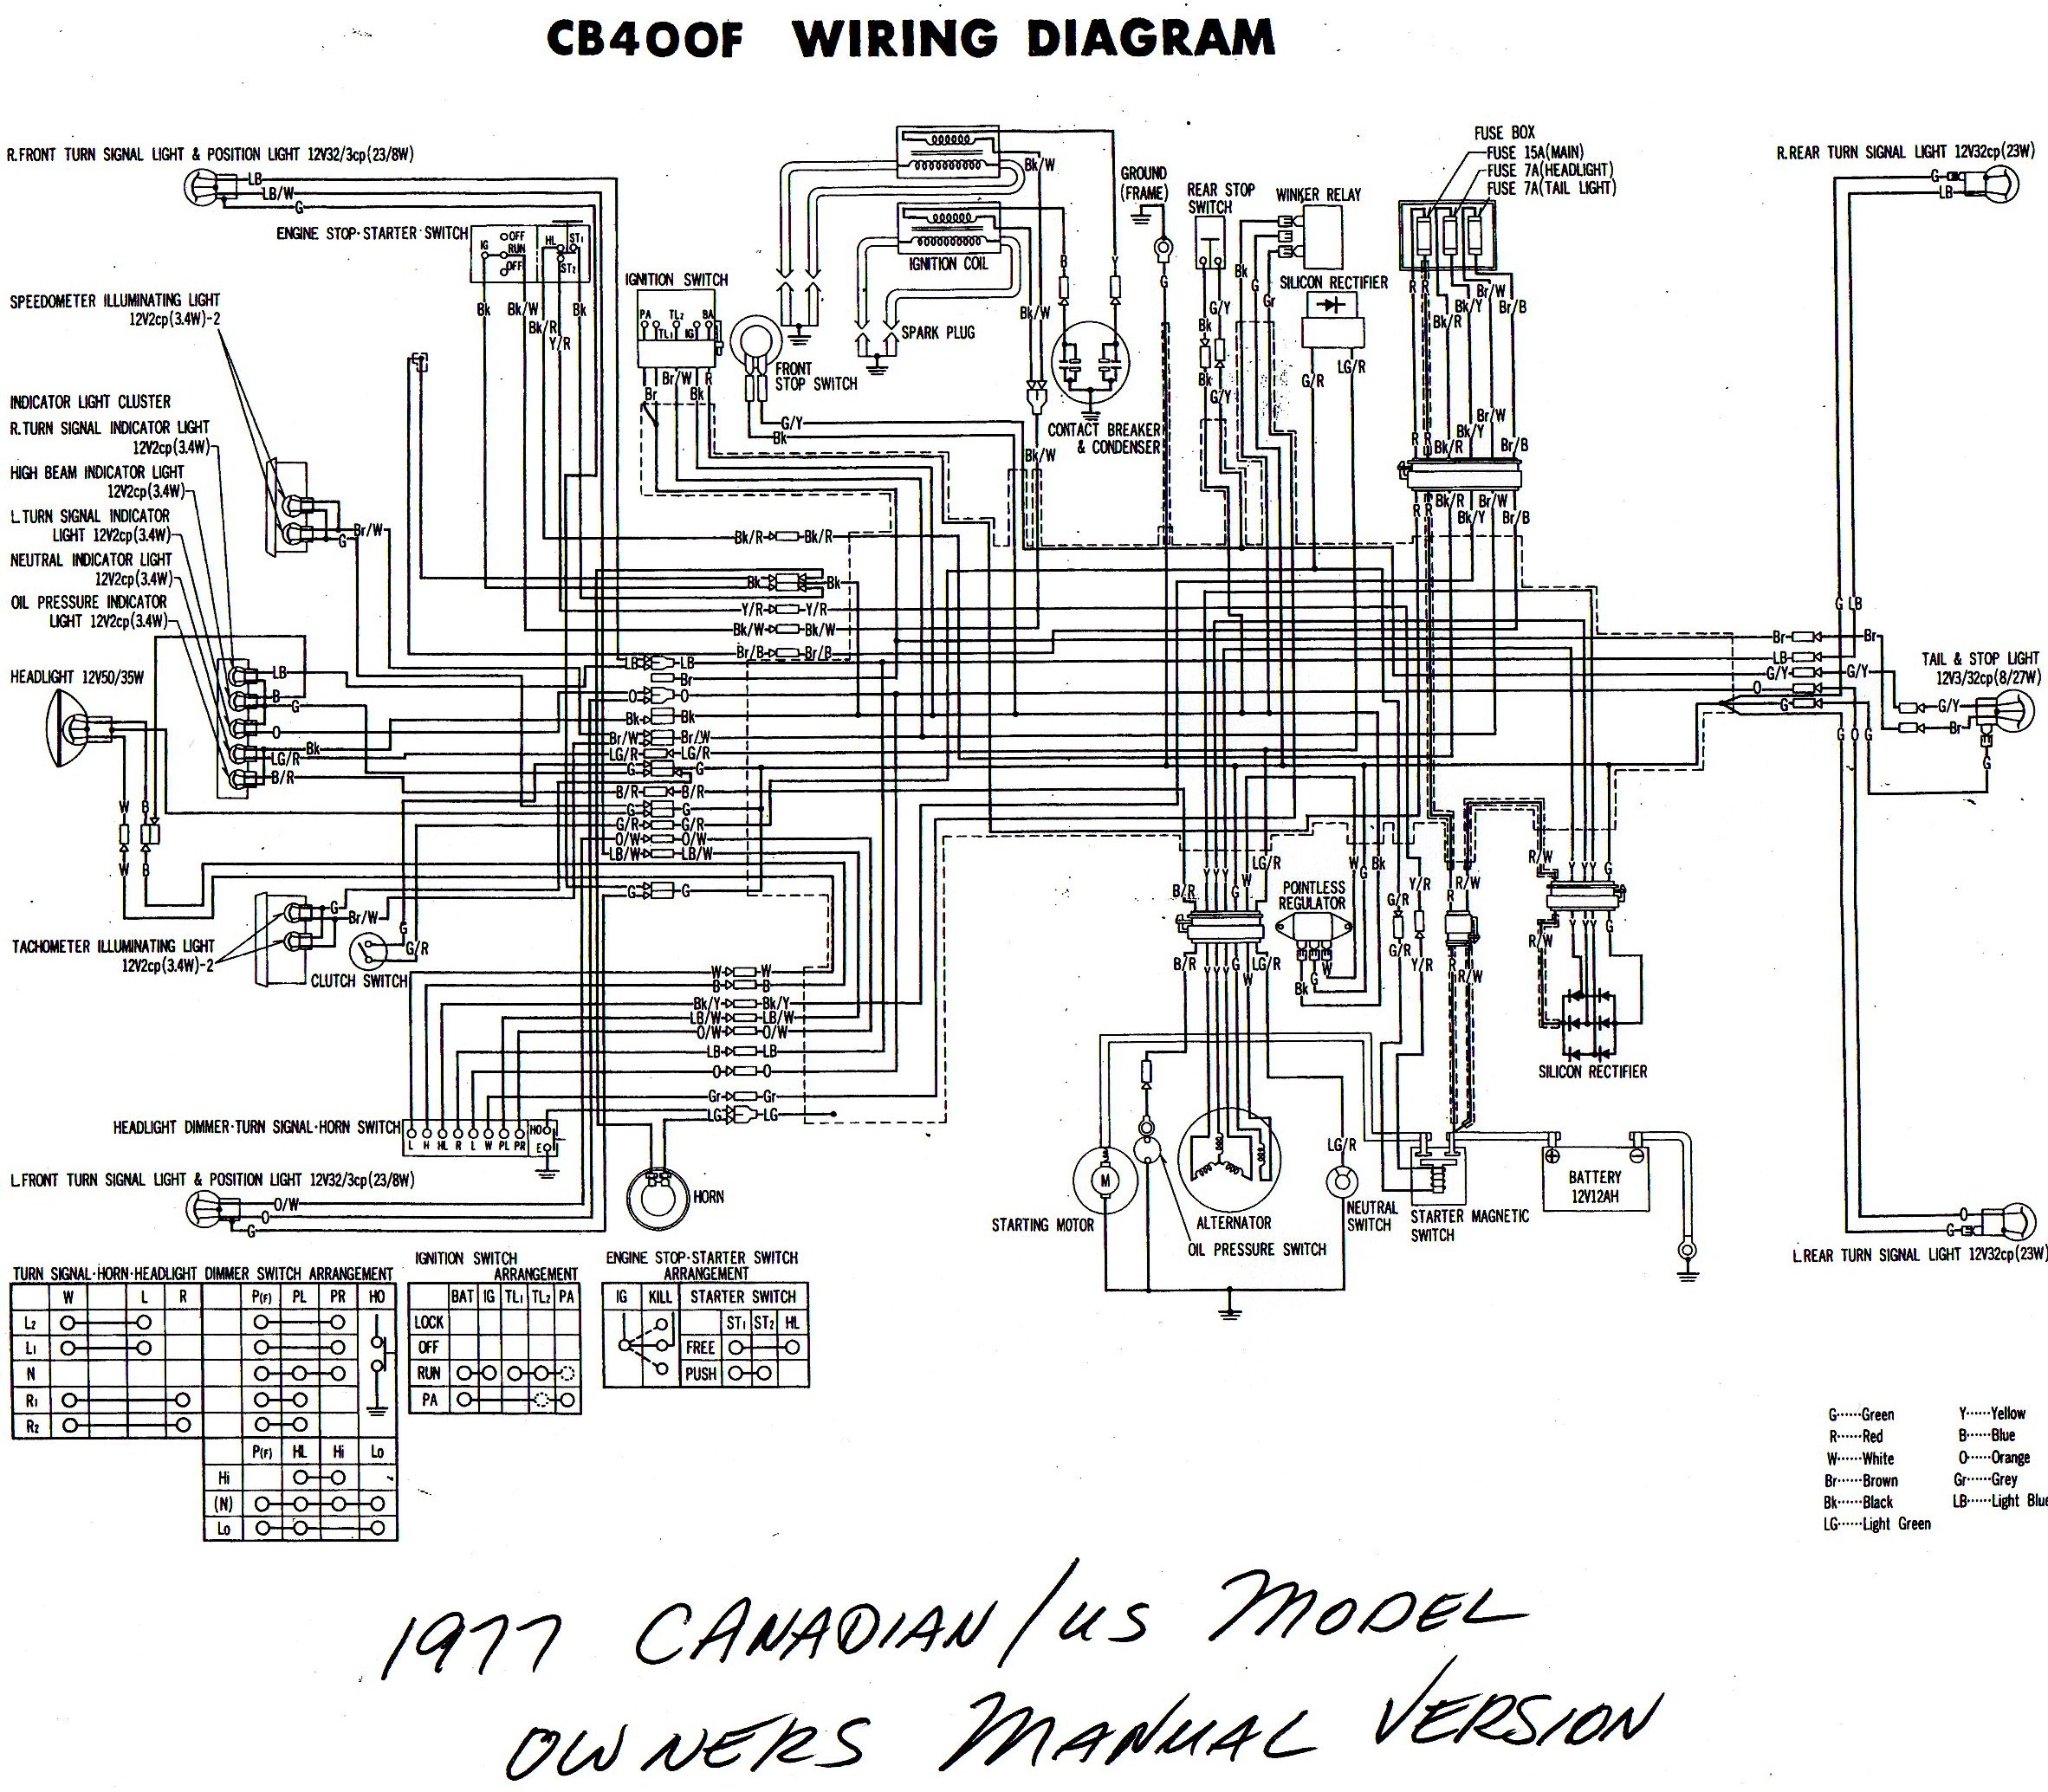 WD40077 cb400 wiring diagram honda c100 wiring diagram \u2022 wiring diagrams 1974 honda cb550 wiring diagram at virtualis.co